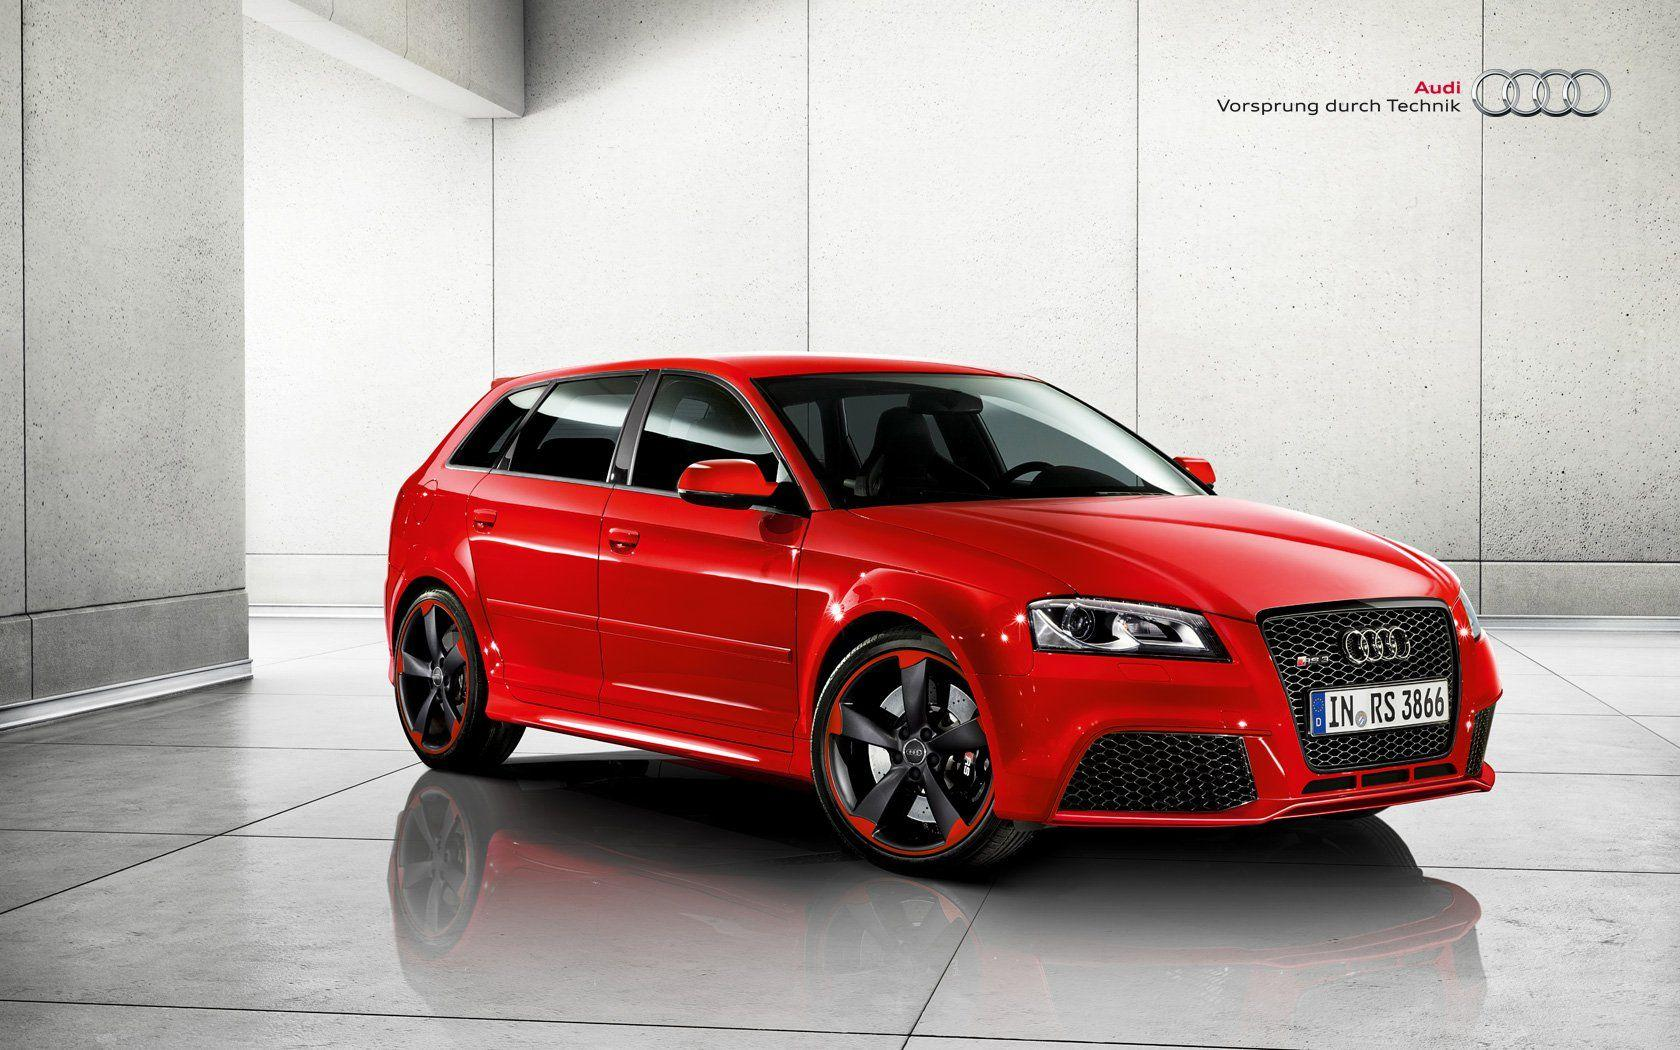 2012 Audi RS3 Sportback Black Optics Package Pictures, Photos